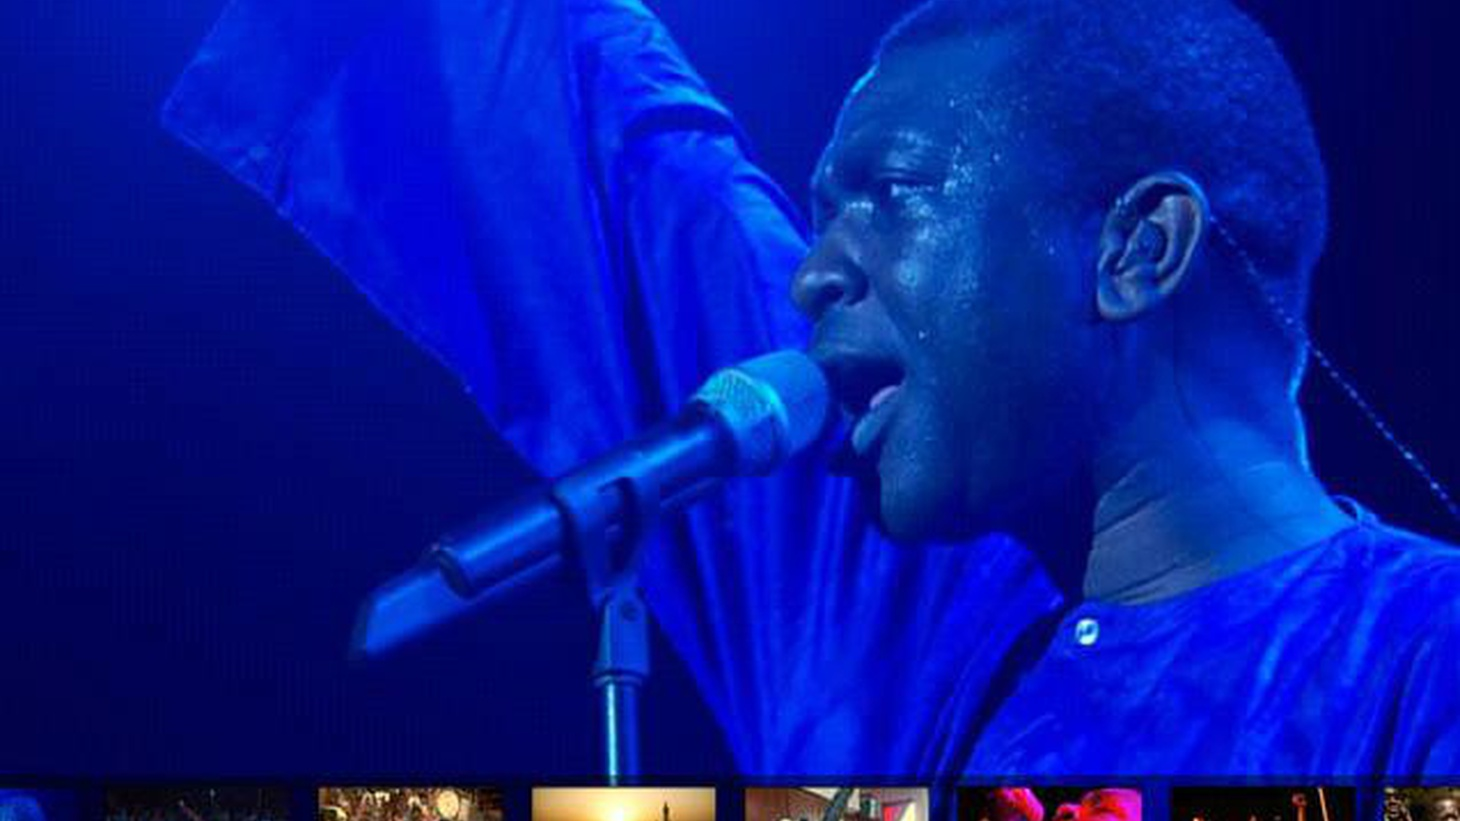 As a musician, Youssou N'Dour has always been about faith. In the documentary I Bring What I Love, director Elizabeth Chai Vasarhelyi (A Normal Life) follows him on the journey committed to that goal.